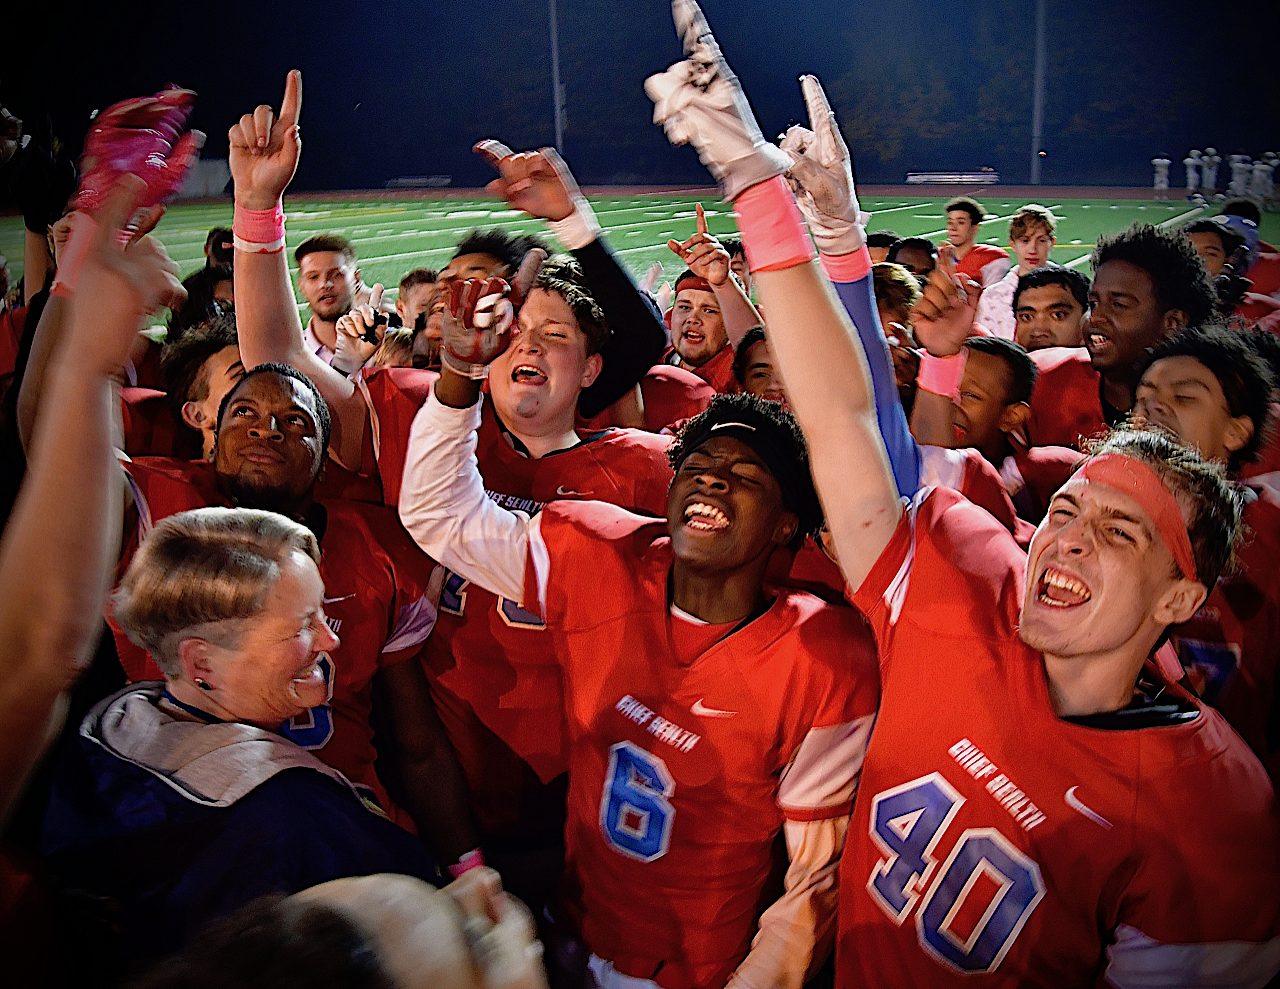 Doree and the Sealth football team